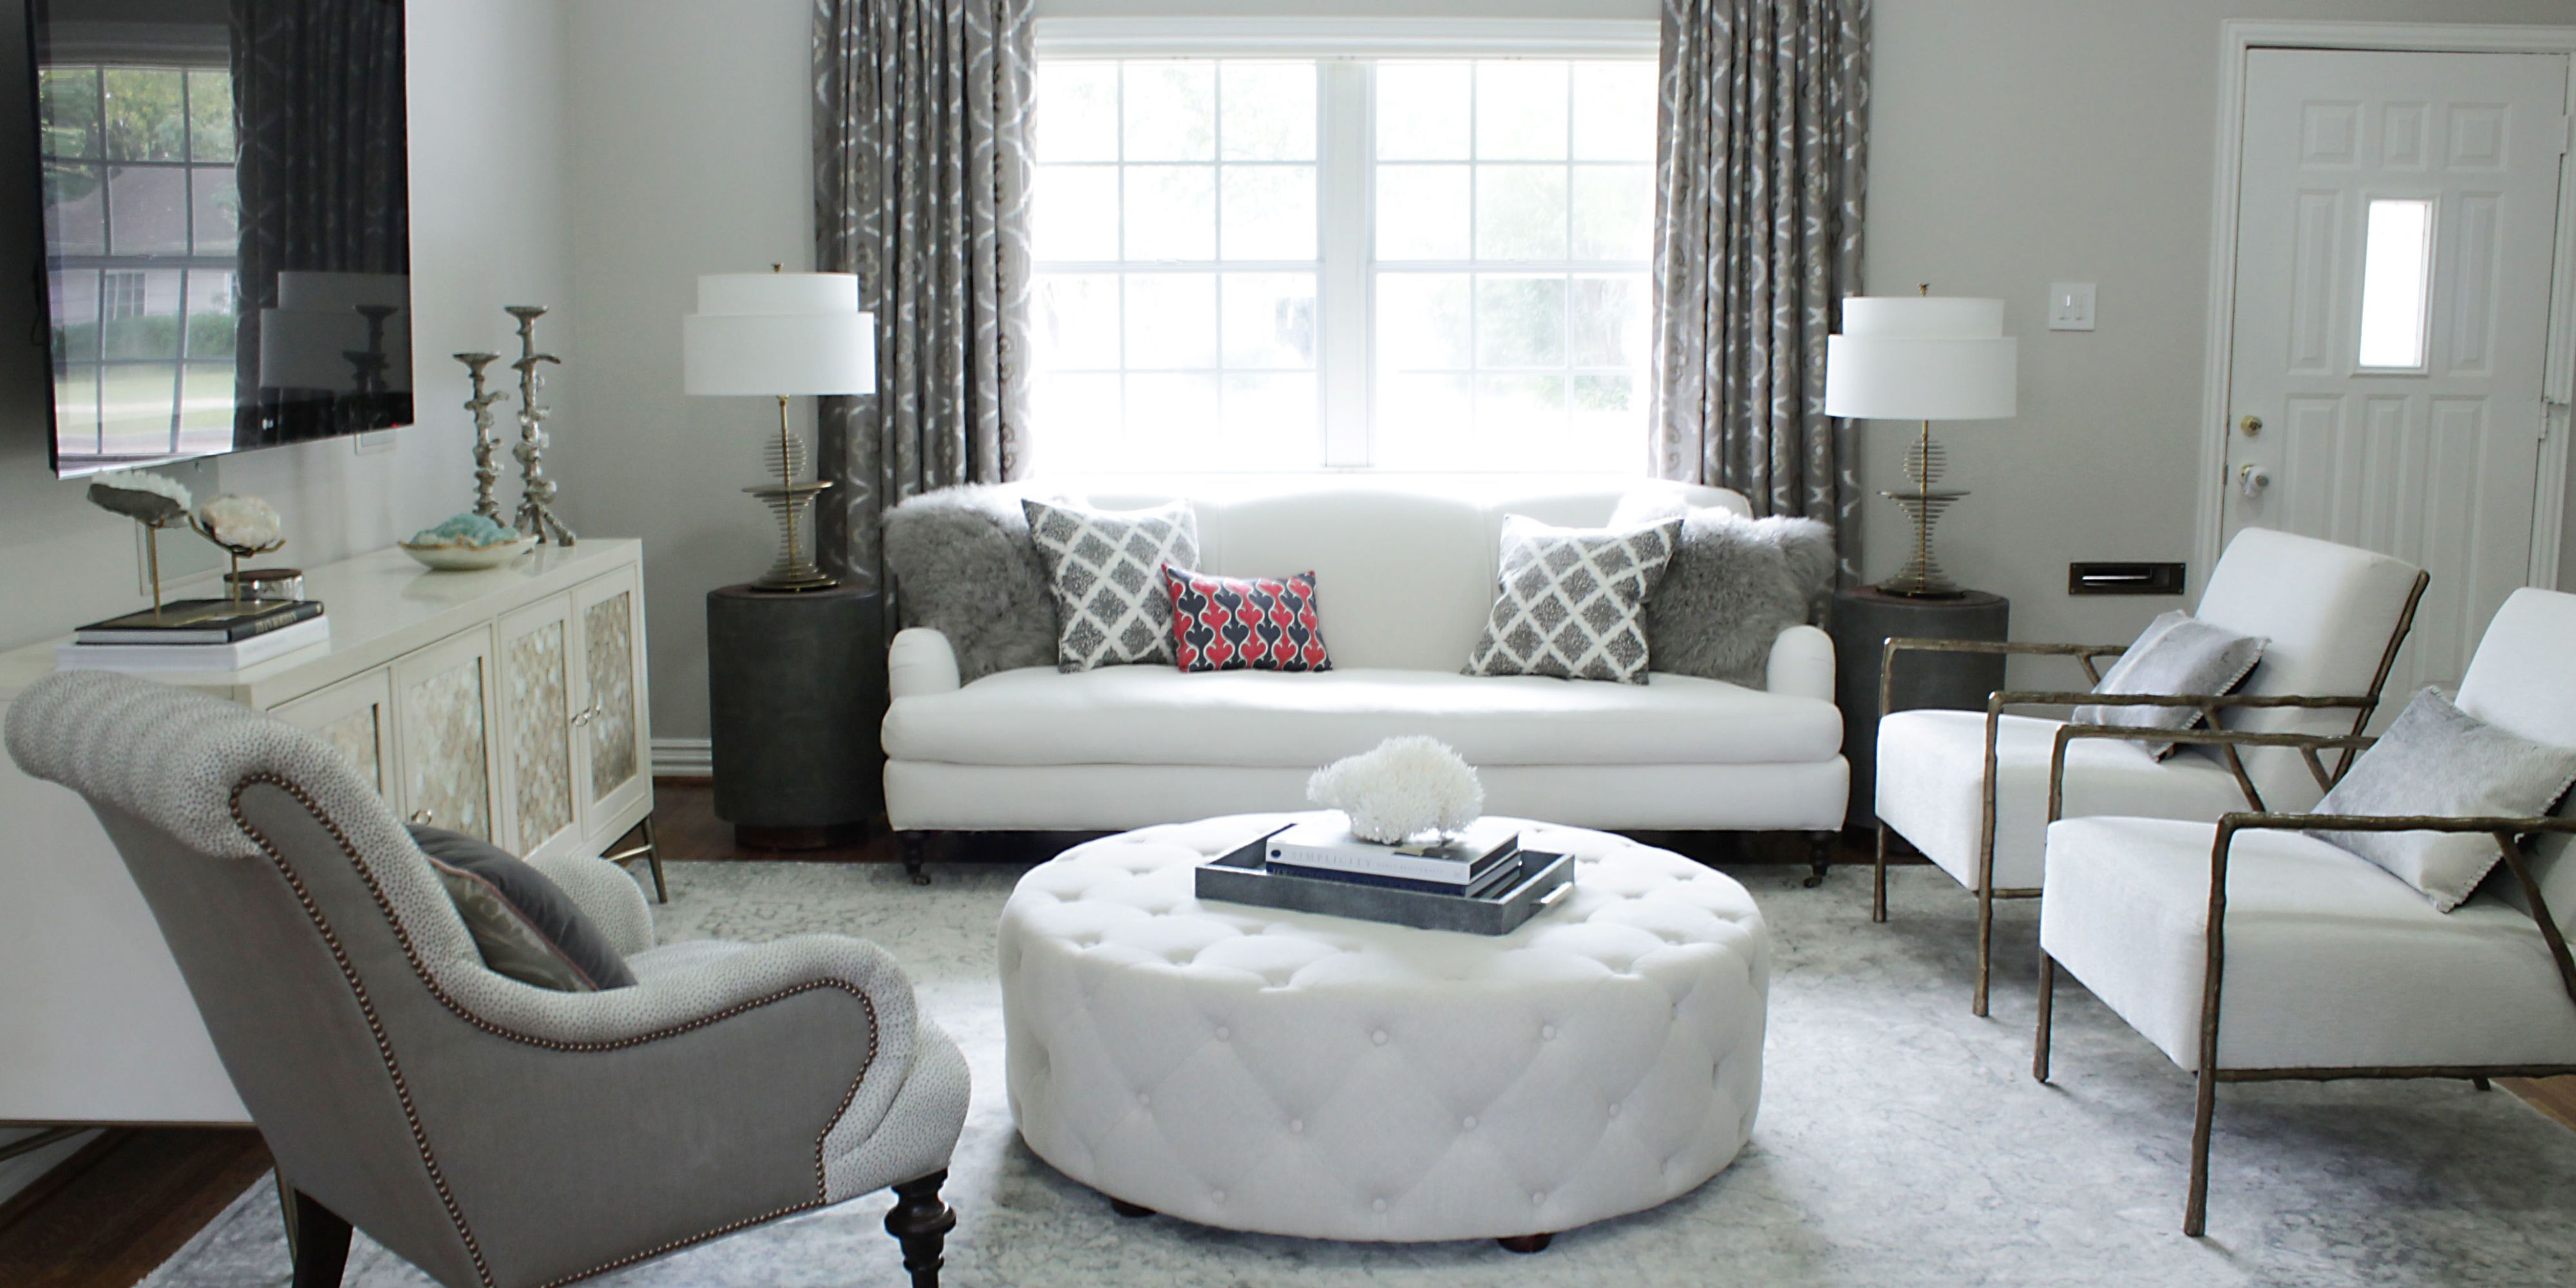 Exceptional Before U0026 After: An Elegant, Budget Friendly Living Room Makeover